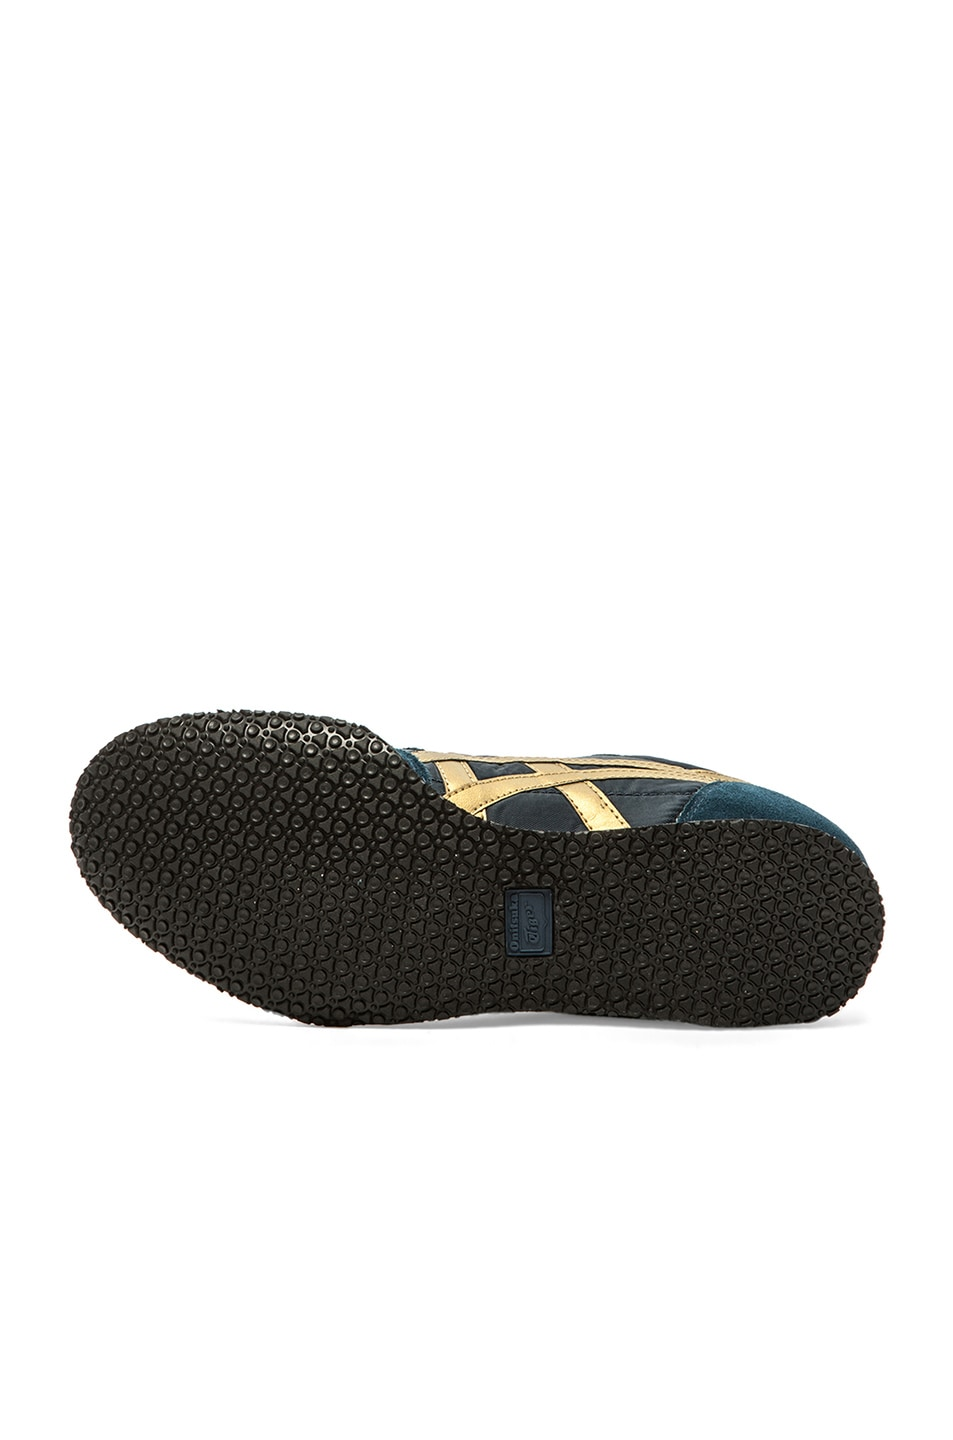 Image 6 of Onitsuka Tiger Serrano in Navy & Gold